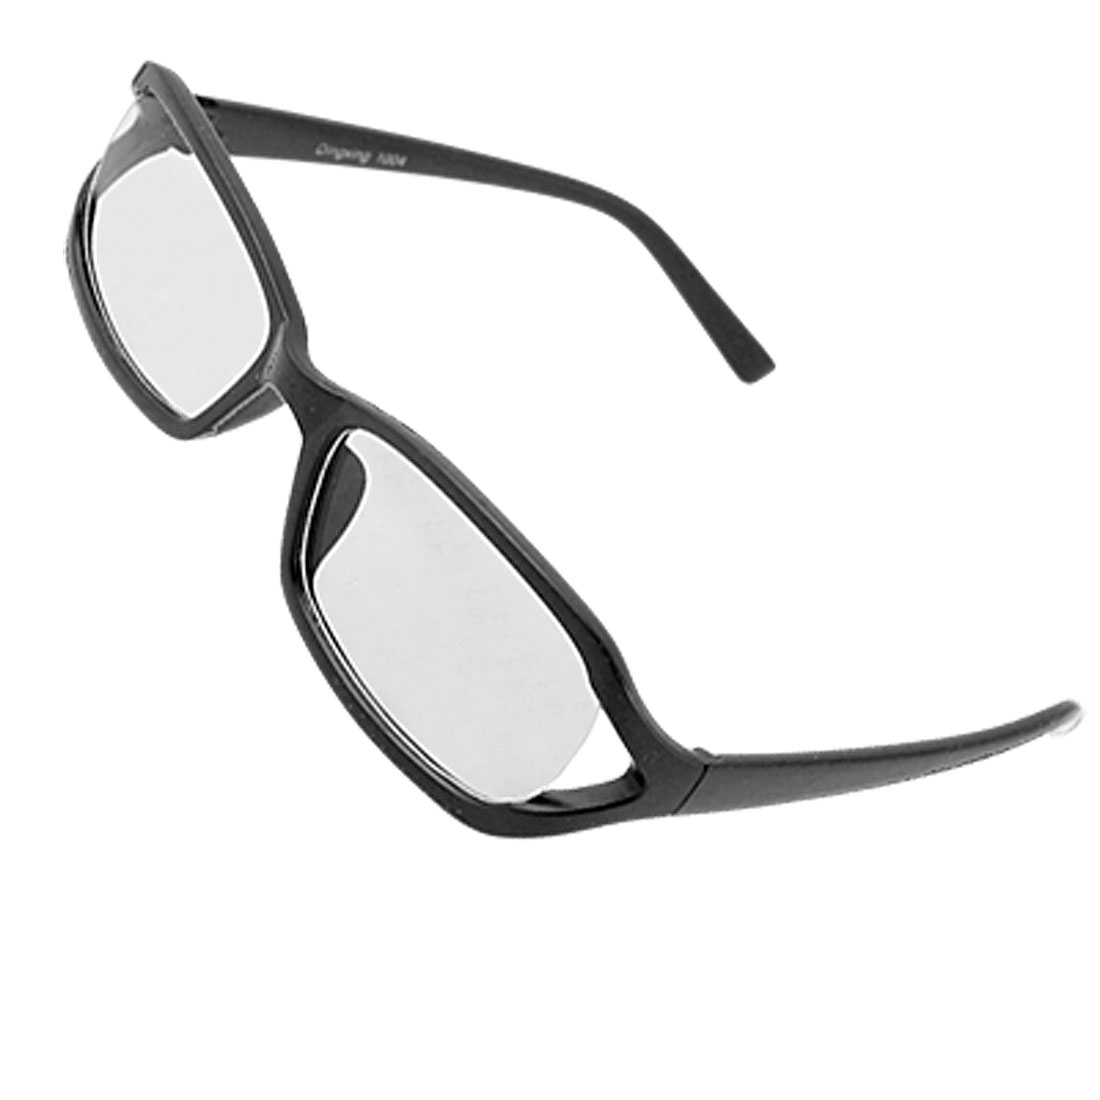 Power X Bifocal Safety Glasses, Black Frame and Clear Lens is rated out of 5 by Rated 5 out of 5 by Gerry from The bi-focal cheaters are a must for older eyes in the garage or doing projects.5/5(9).